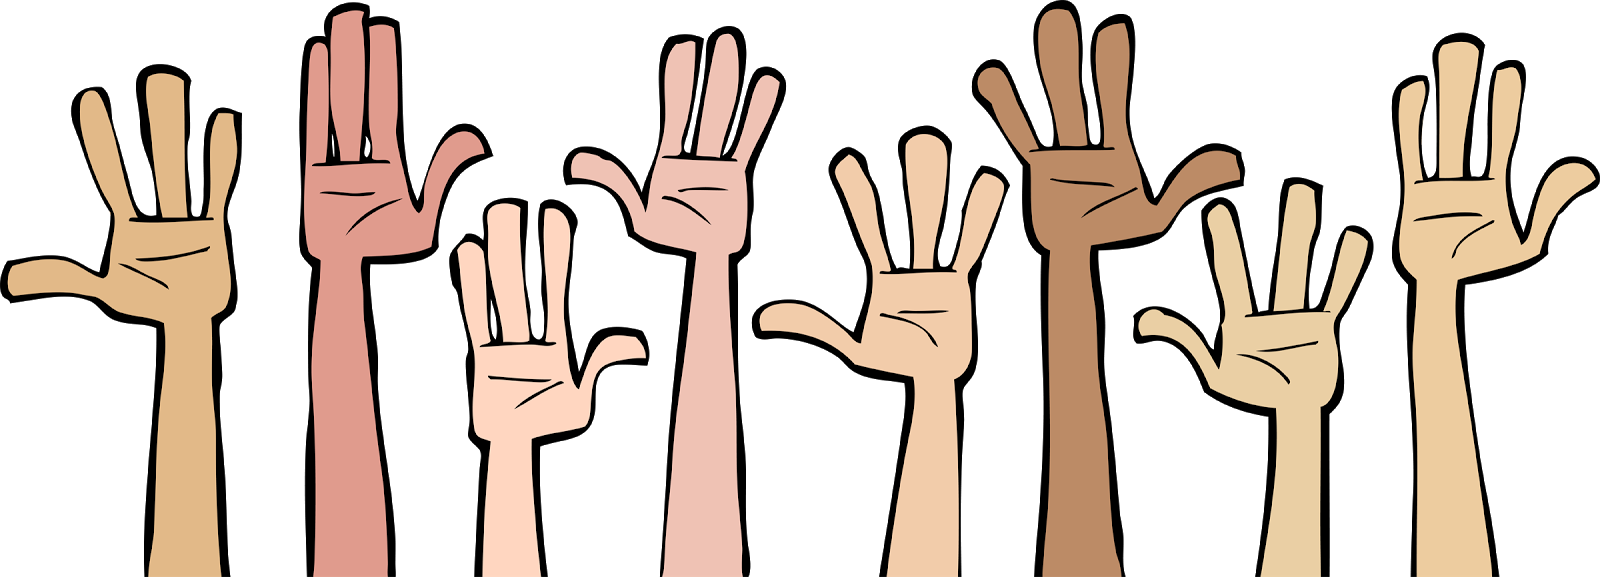 Voting clipart thumb. Animation hand cartoon vote